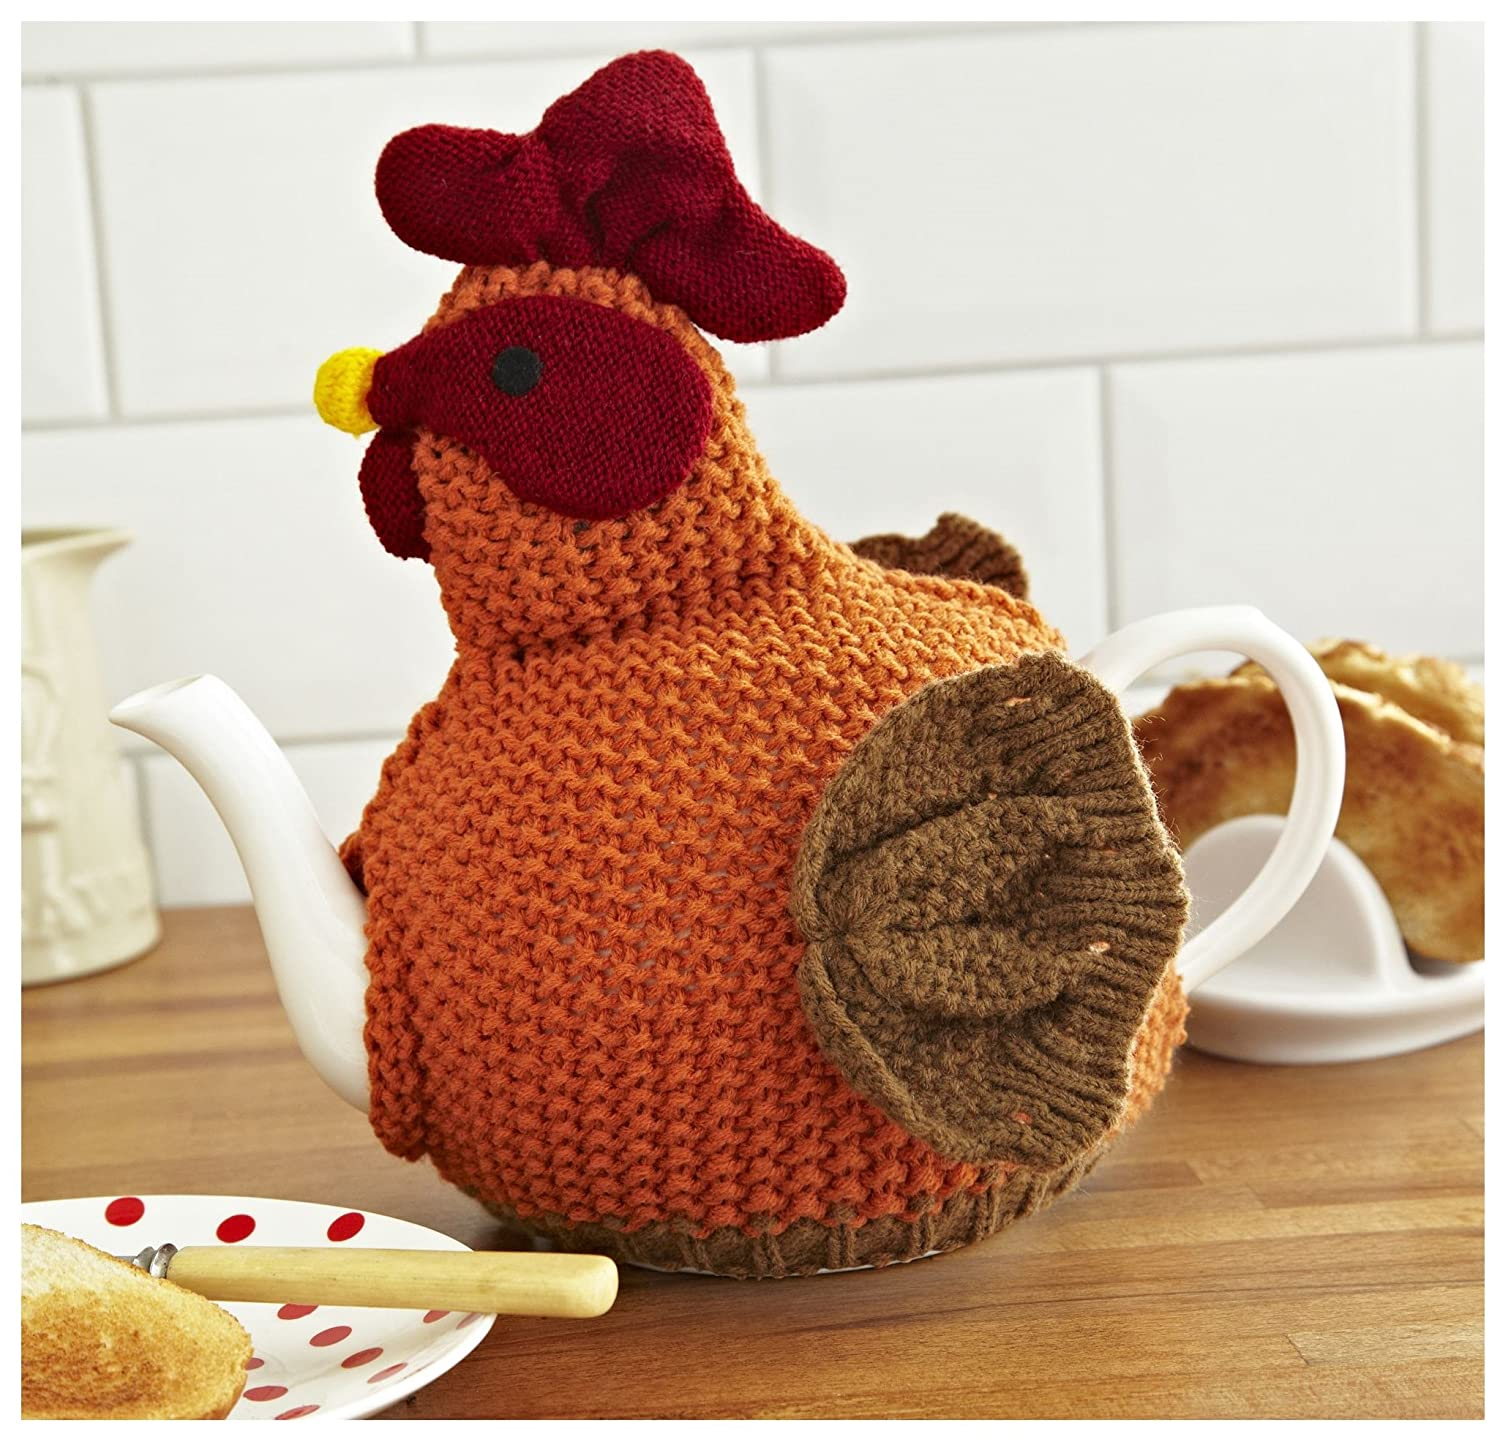 Ulster Weavers Chicken Knitted Tea Cosy: Amazon.co.uk: Kitchen & Home